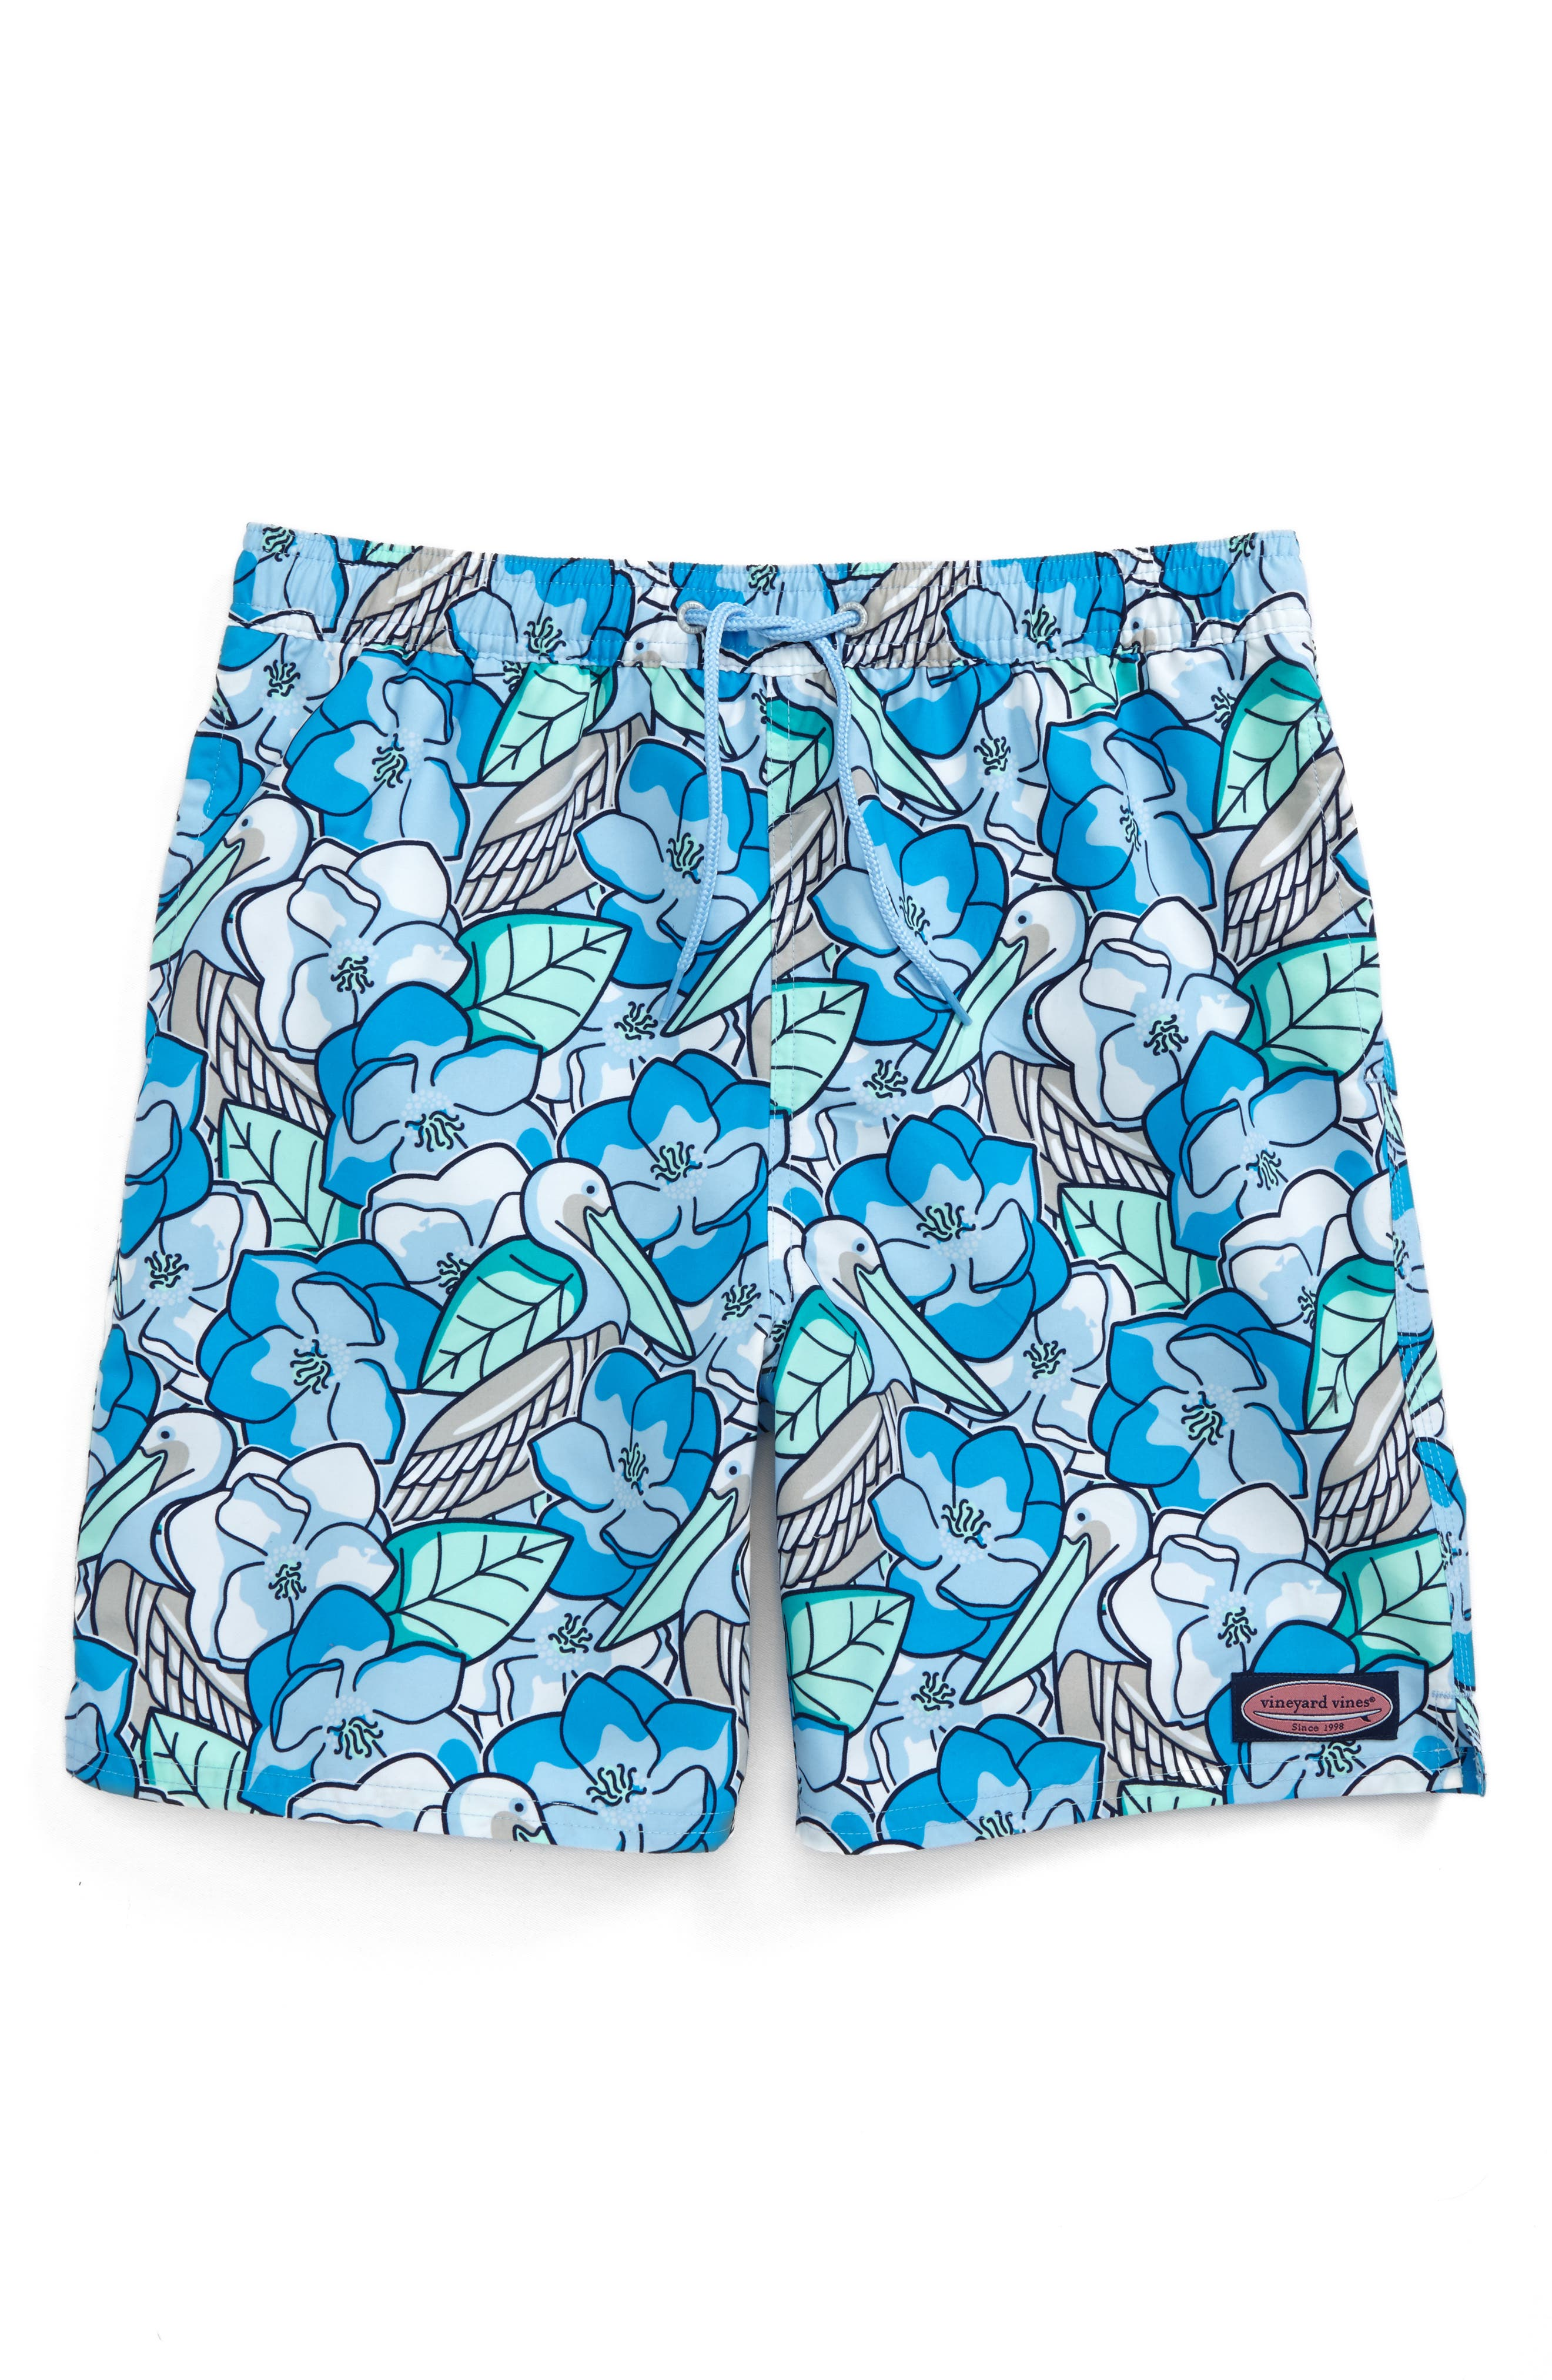 Pelican Magnolias Chappy Swim Trunks,                             Main thumbnail 1, color,                             Airy Blue